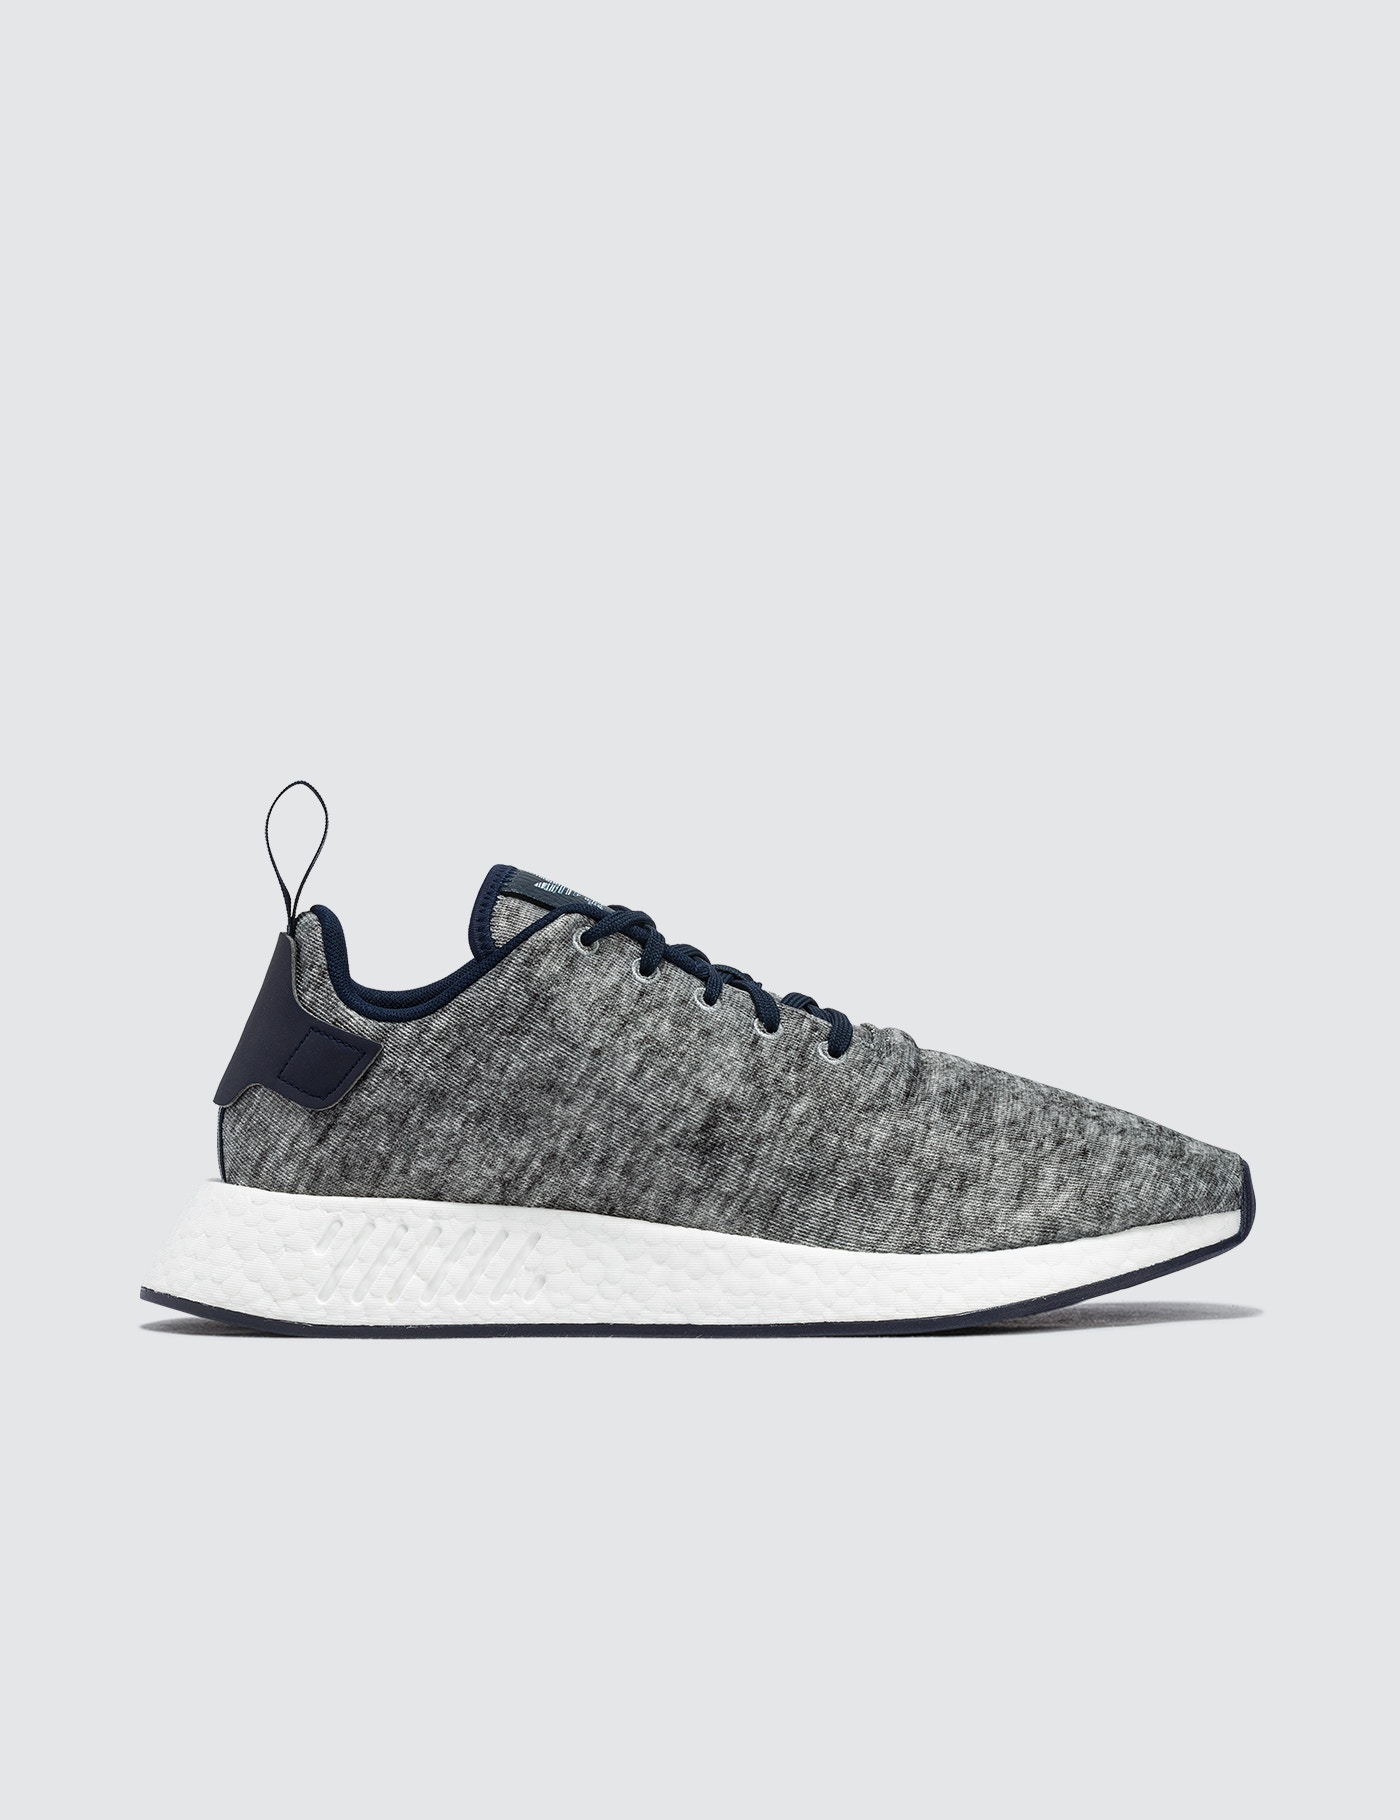 4138fa43f Buy Original Adidas Originals United Arrows   Sons x Adidas NMD R2 ...